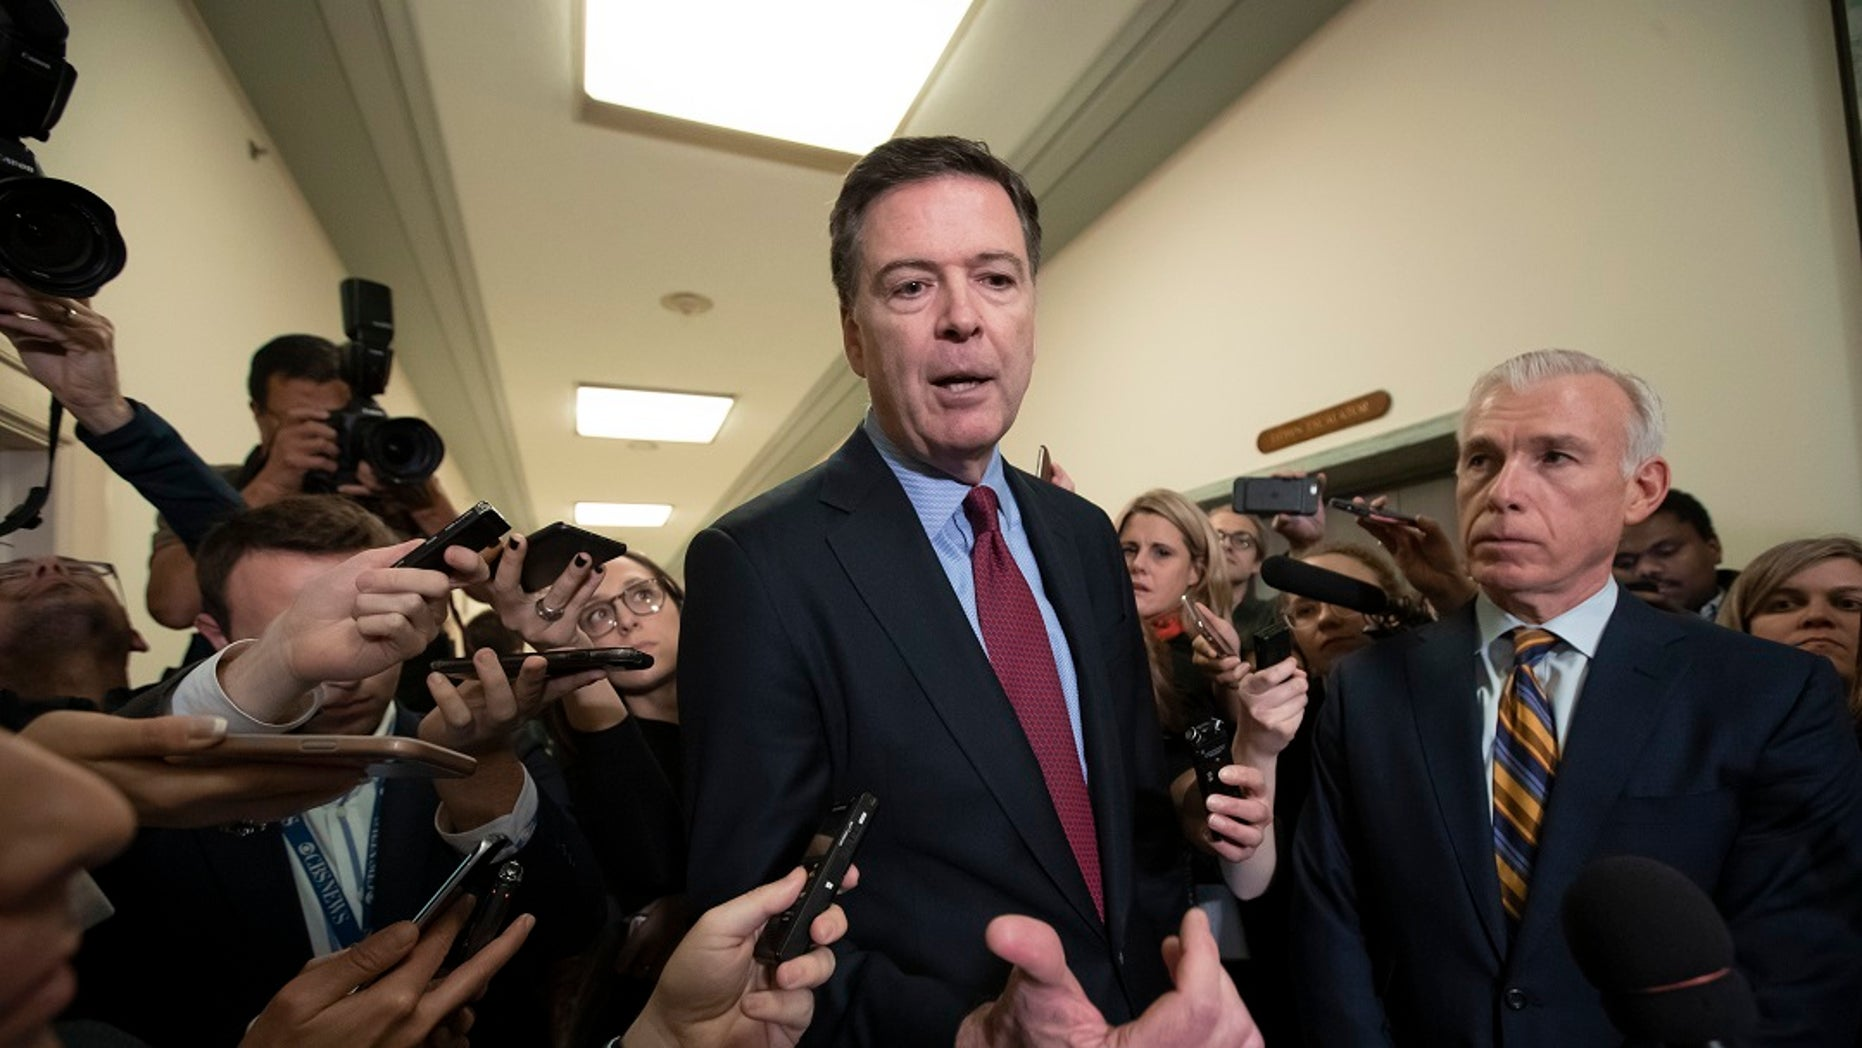 Former FBI Director James Comey, with his attorney, David Kelley, right, speaks to reporters after a day of testimony before the House Judiciary and Oversight committees, on Capitol Hill in Washington, Dec. 7, 2018. (Associated Press)